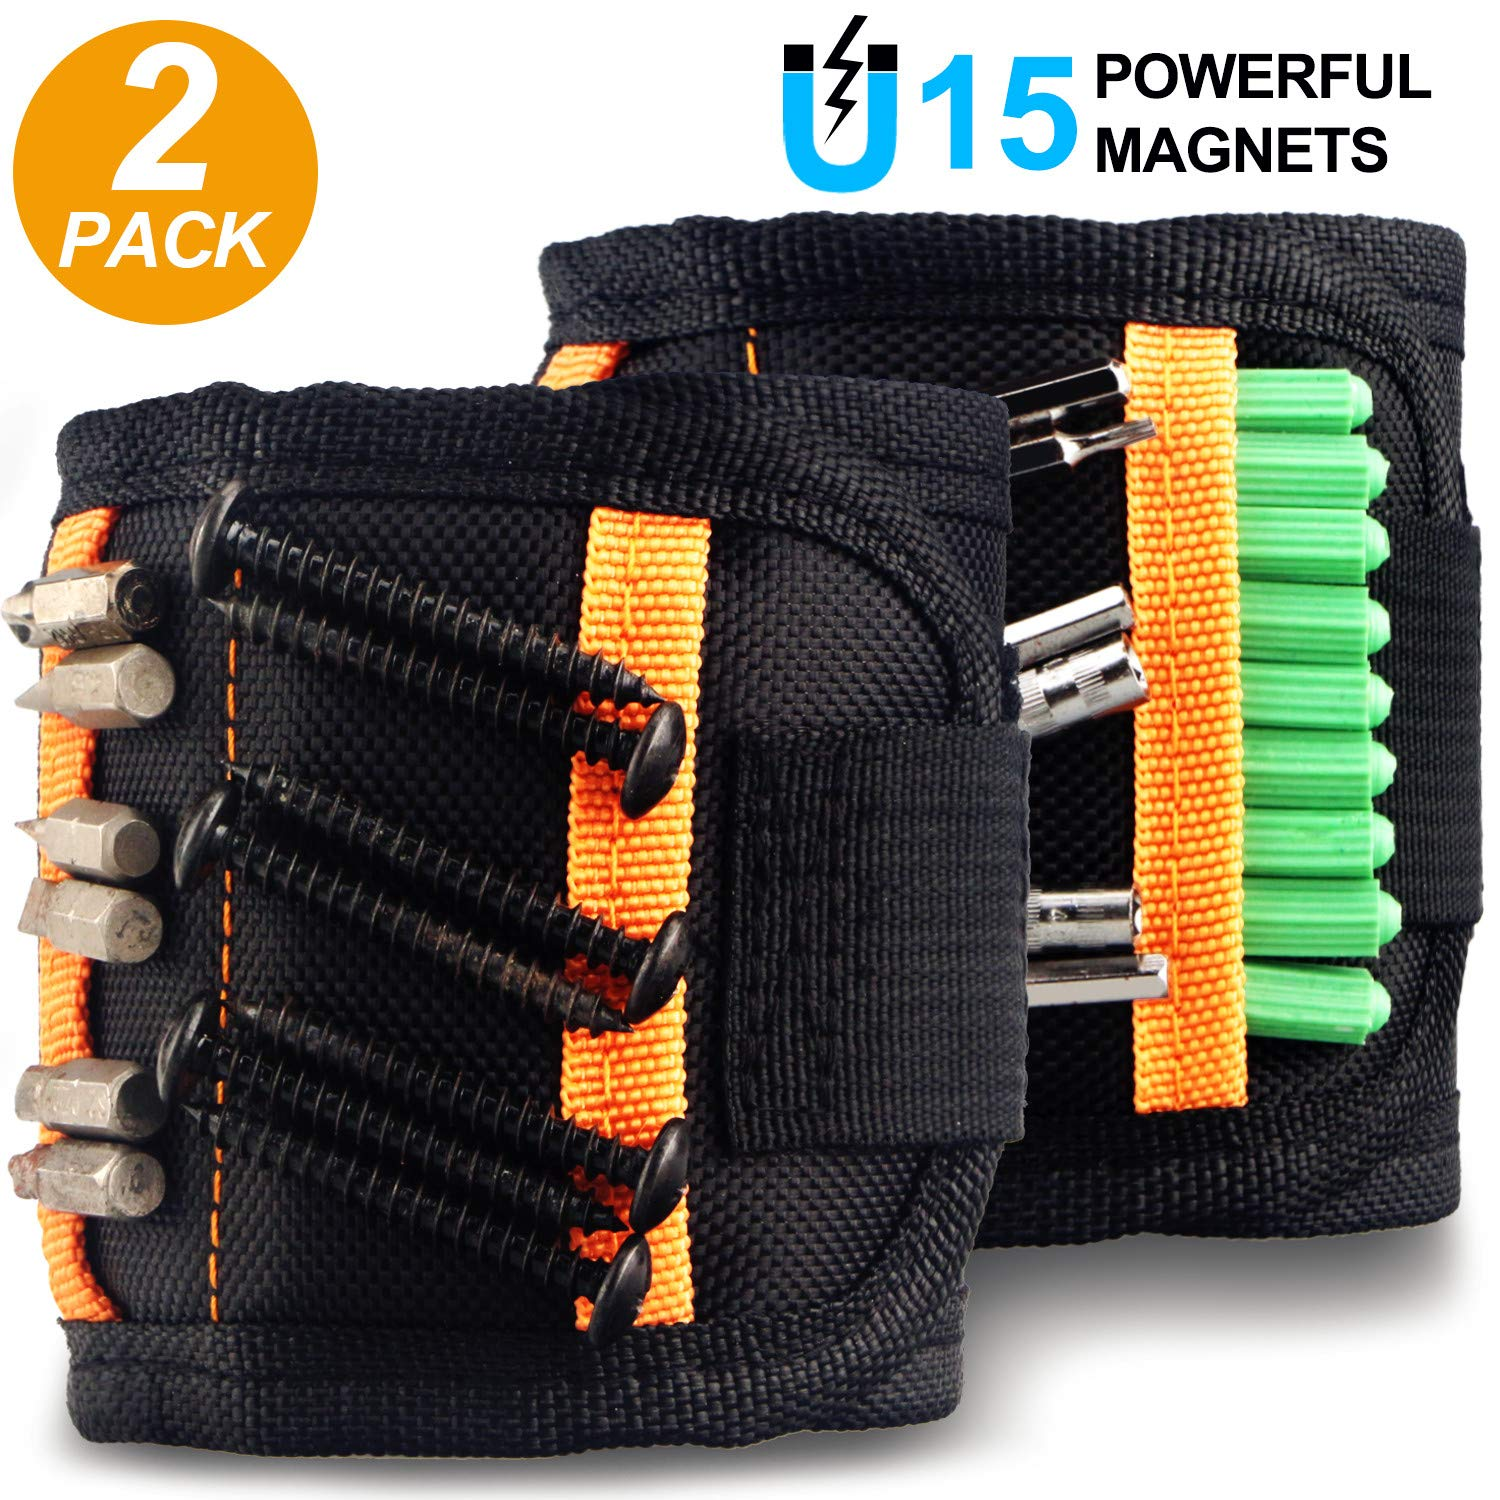 2 Pack Magnetic Wristband, Tools with N38 Grade Strong Magnets for Holding Screws, Nails Drill Bits, Tools for Men, Father/Dad, Husband, DIY Handyman, Gifts for Men, Unique Mens Gifts by Soft digits